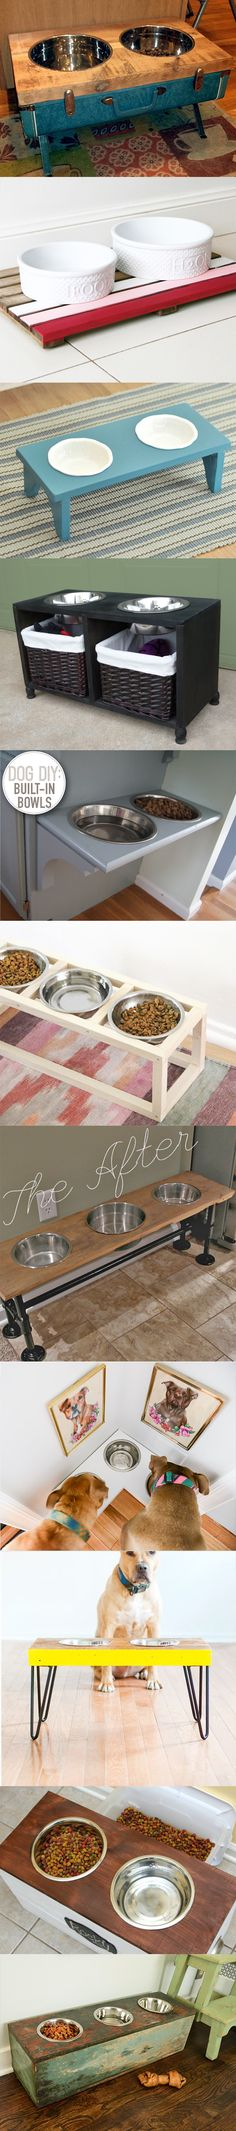 Build your own Dog food storage and feeding station (with instructions). This helped my clumsy dog from spilling his dish, and they look great in any home.